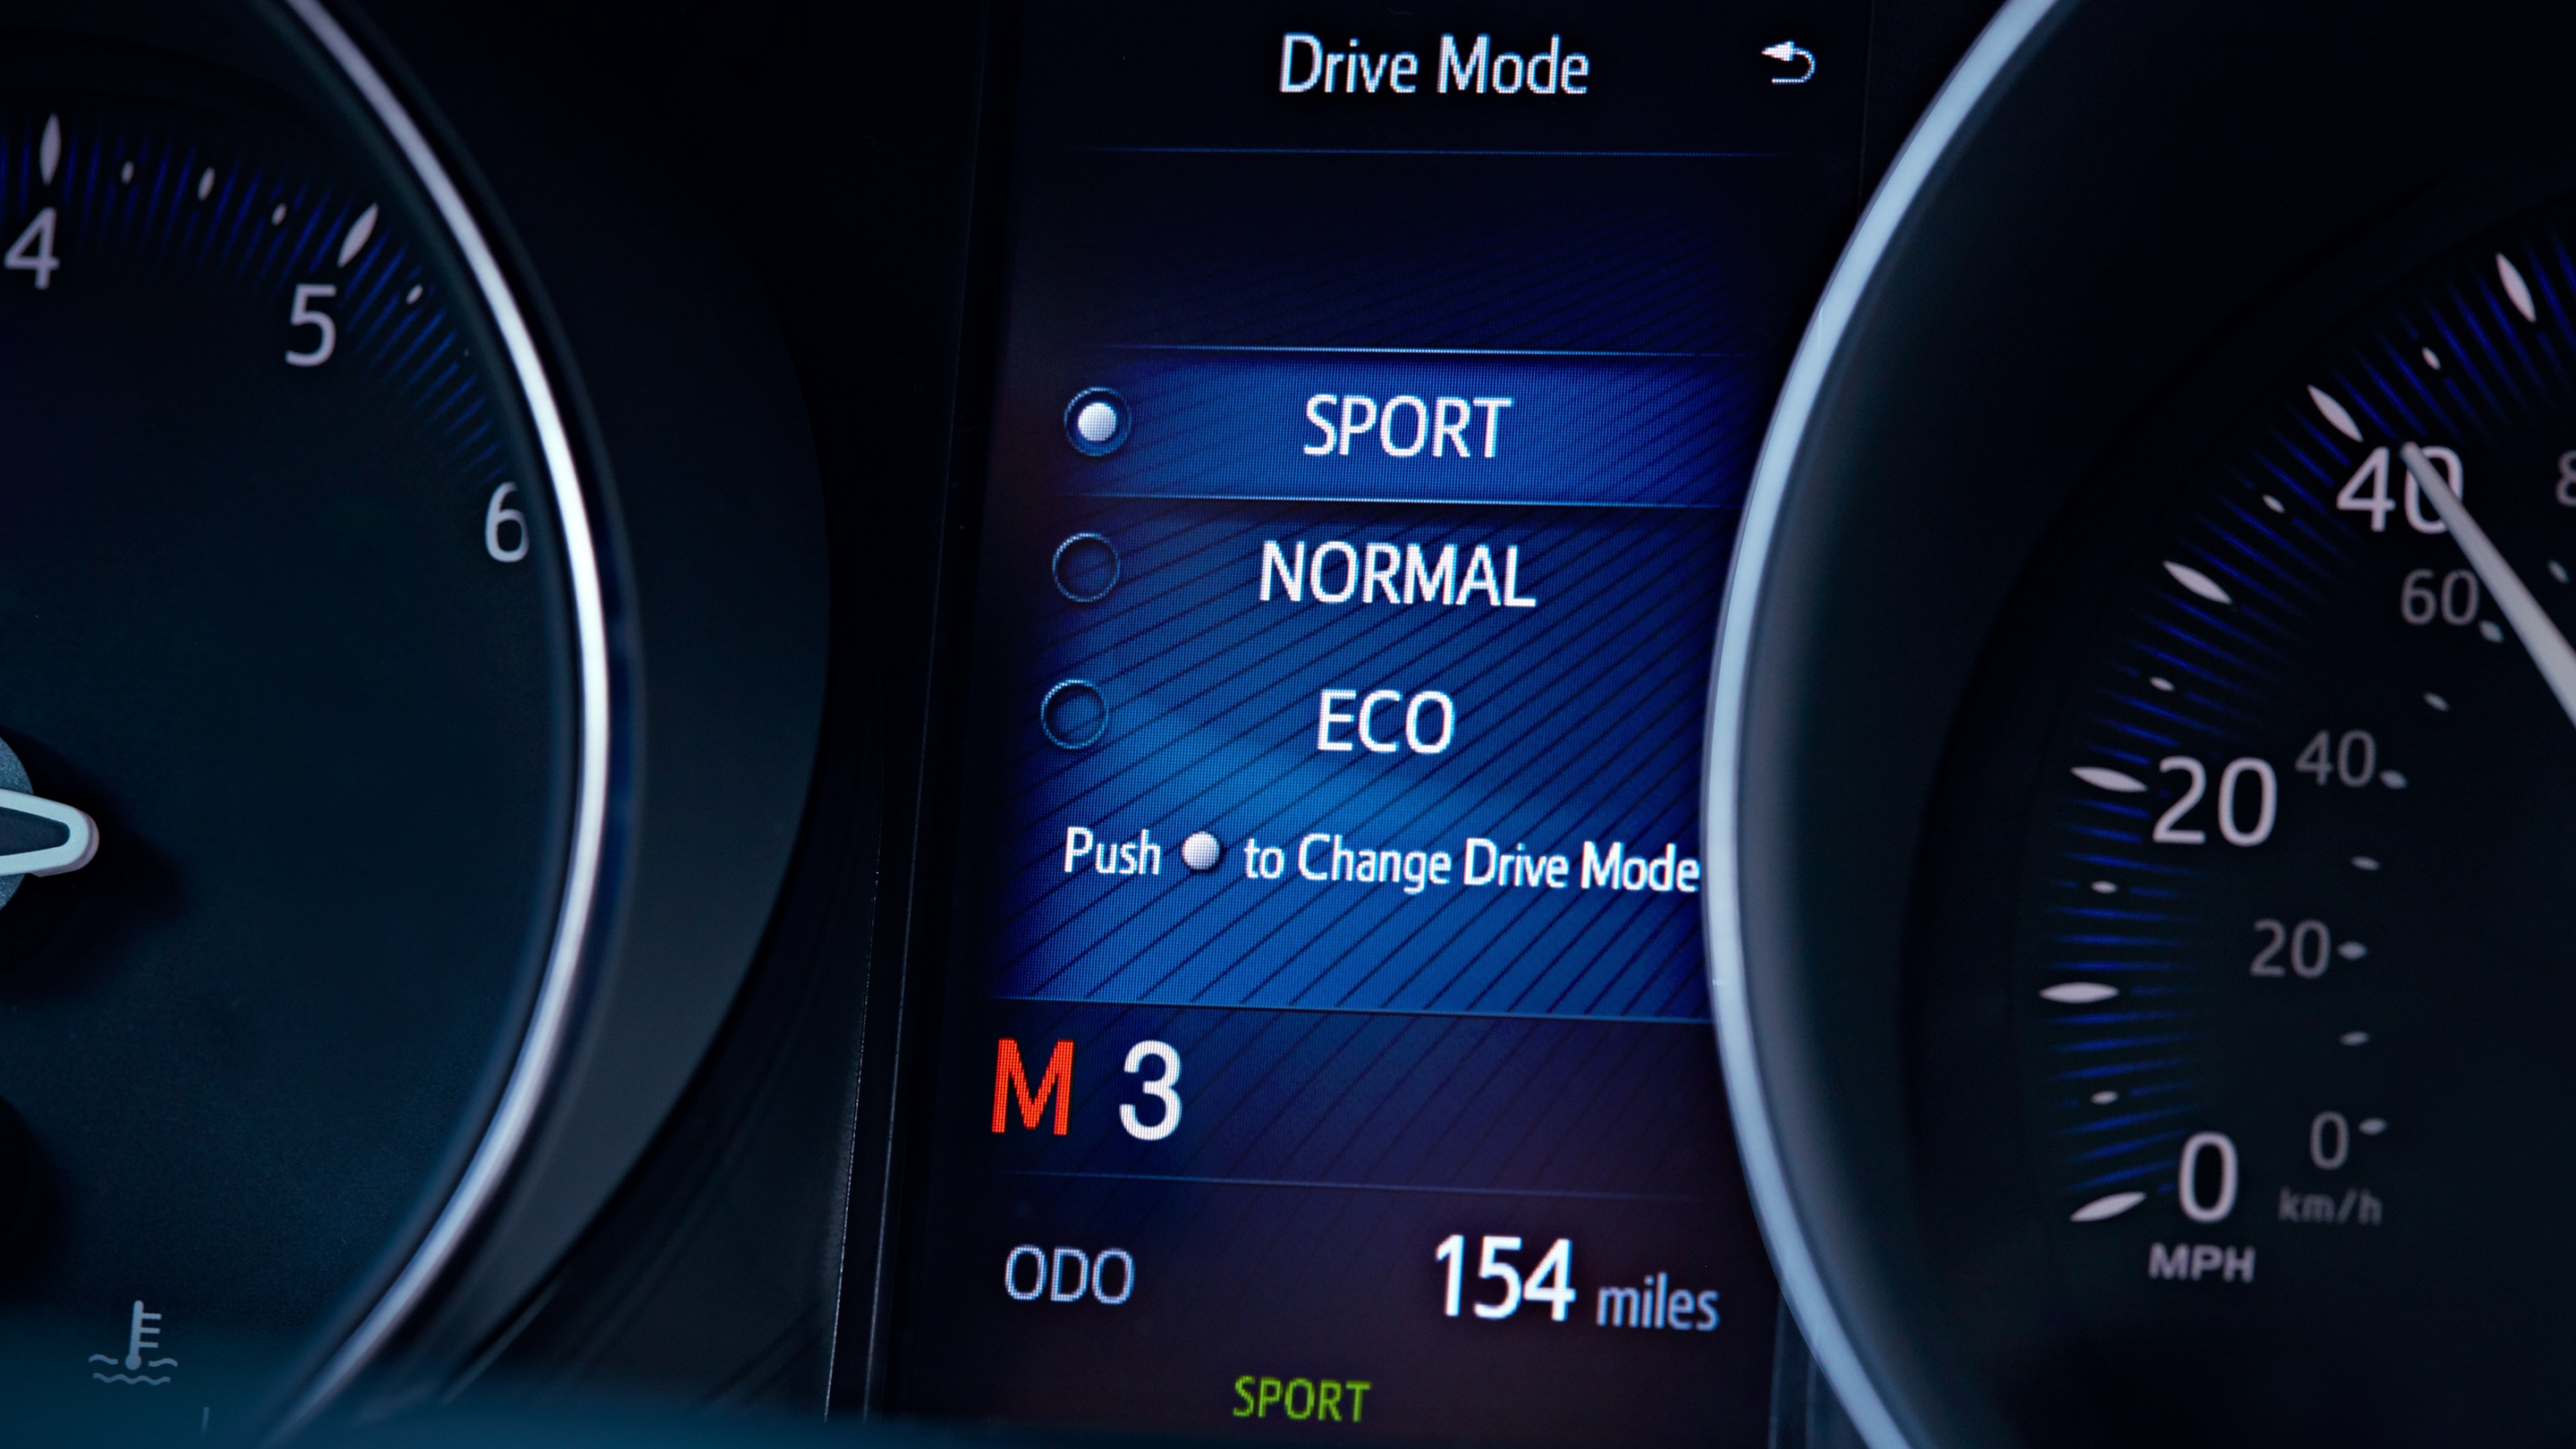 Display in the 2019 C-HR